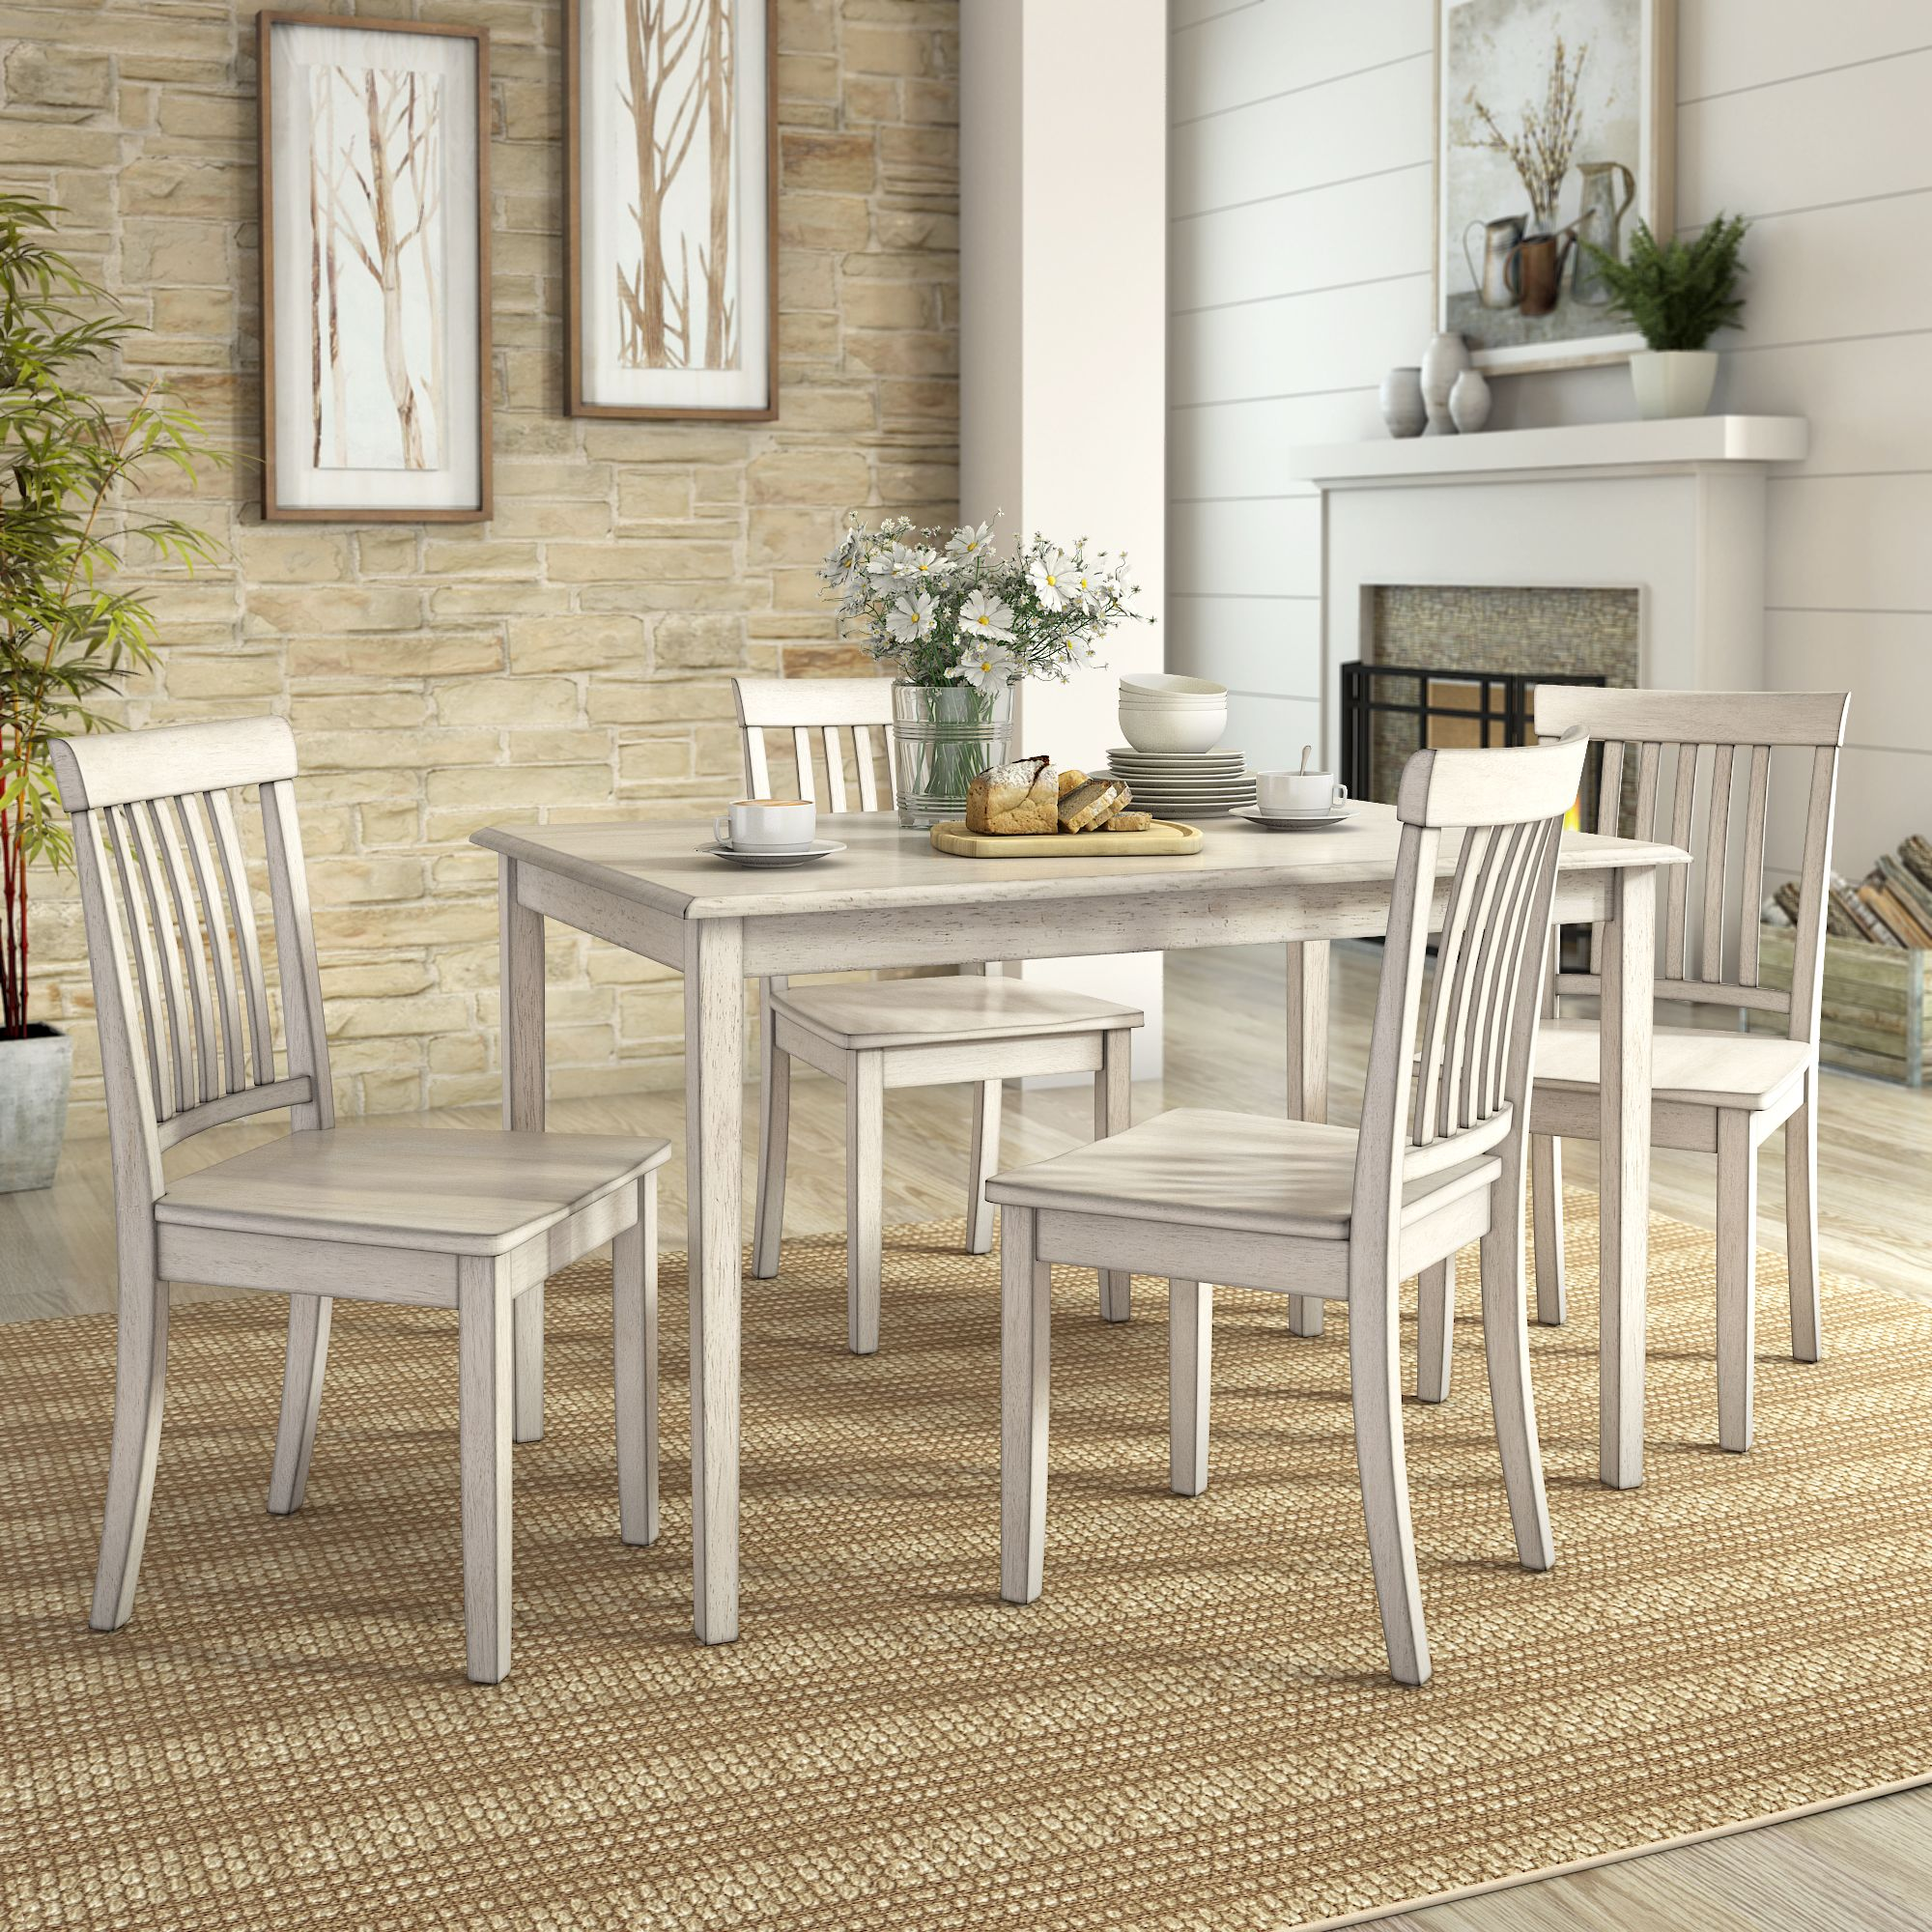 Home in 2019 House 5 piece dining set, Dining set